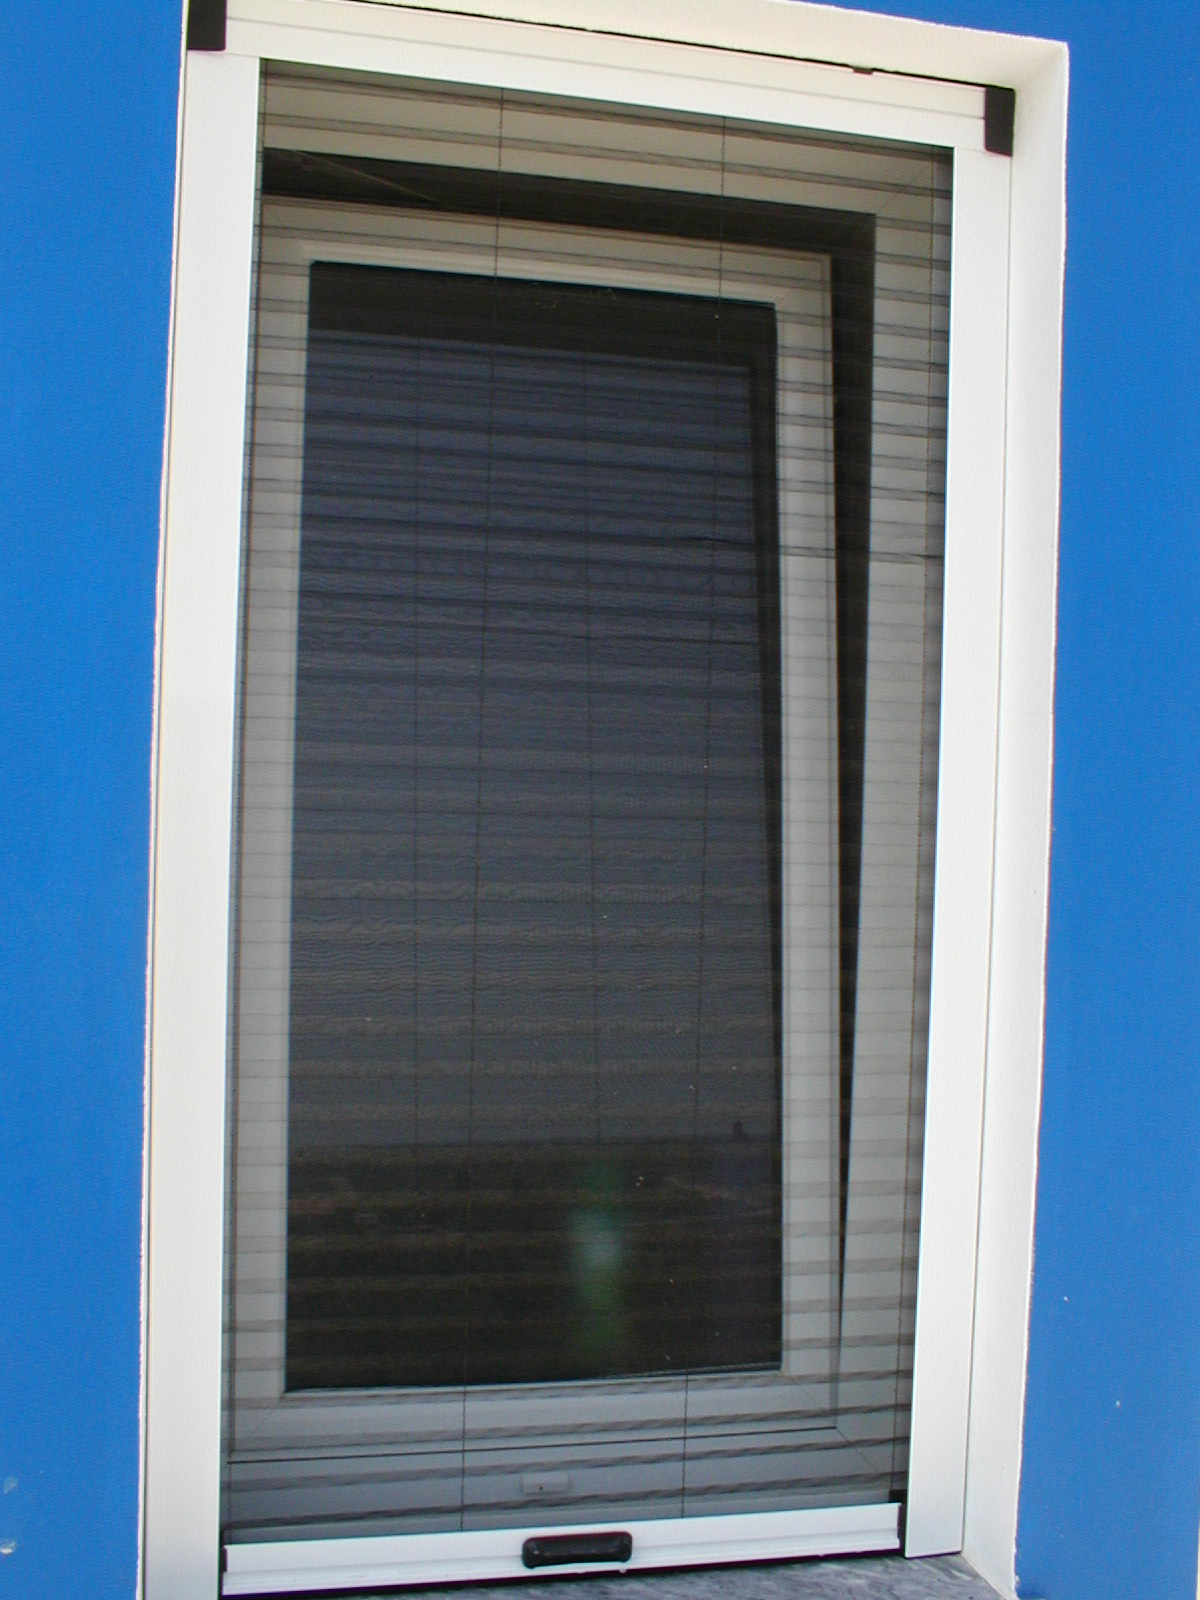 Fly Screens For Patio Doors Anderson Exterior French Doors Screen For French Doors Inswing